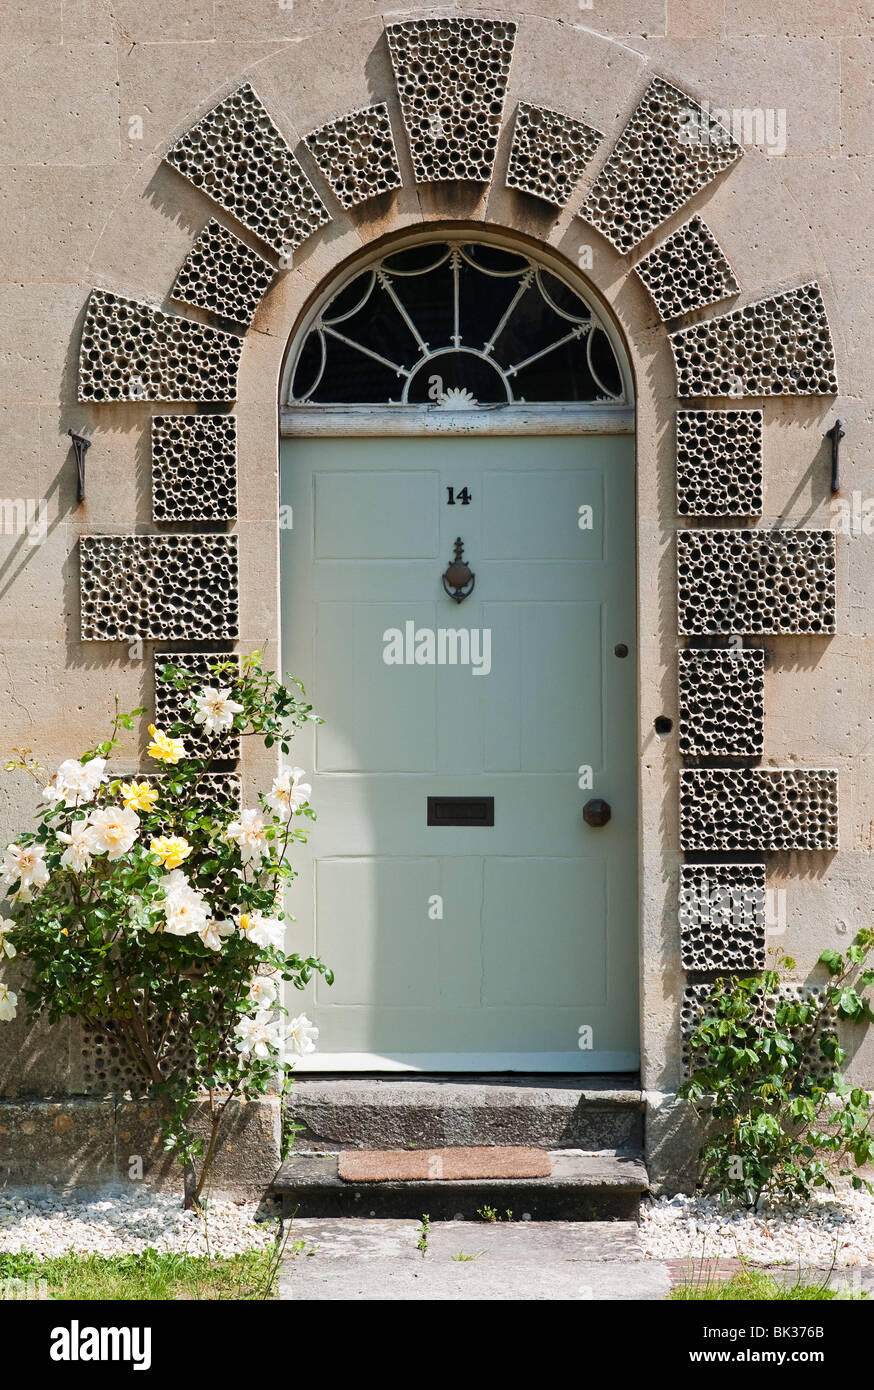 Ornate domestic front doorway design photographed from public road Stock Photo